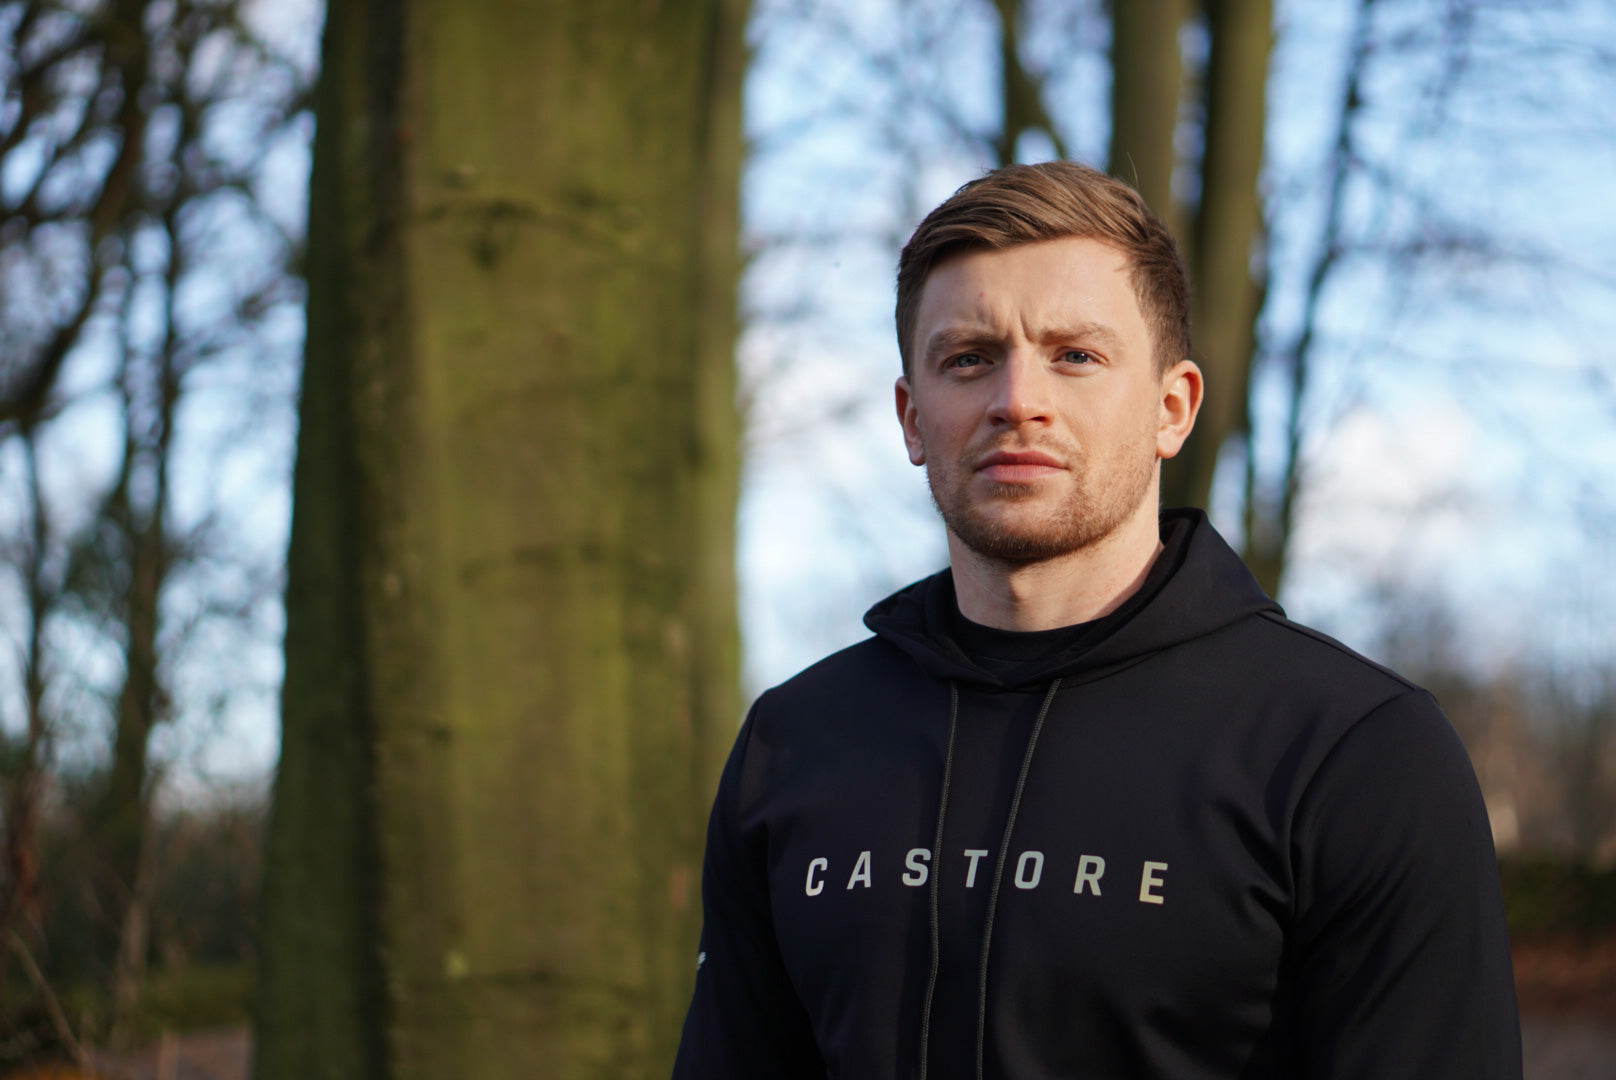 Castore Sportswear Announces Partnership with British Swimmer Adam Peaty